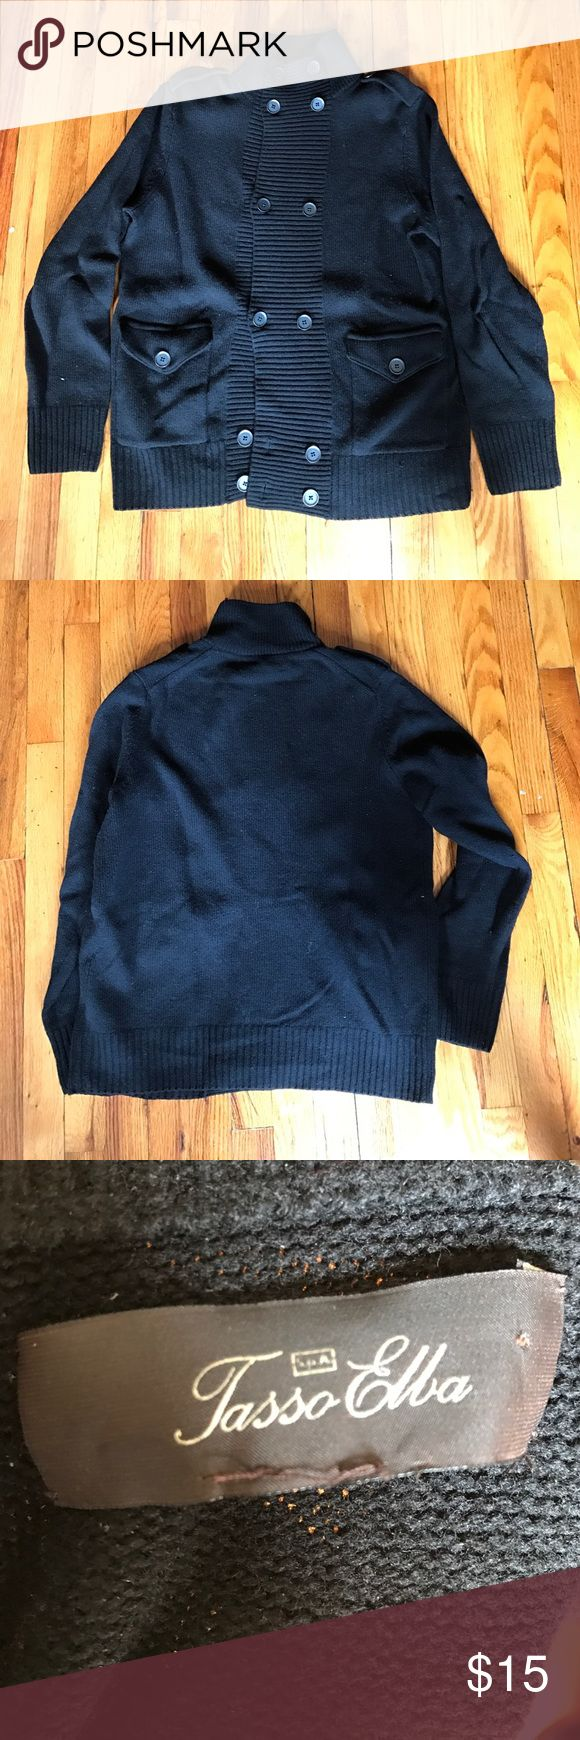 Men's Cardigan Sweater Double Breasted. Pre-Loved. Size Large Sweaters Cardigan